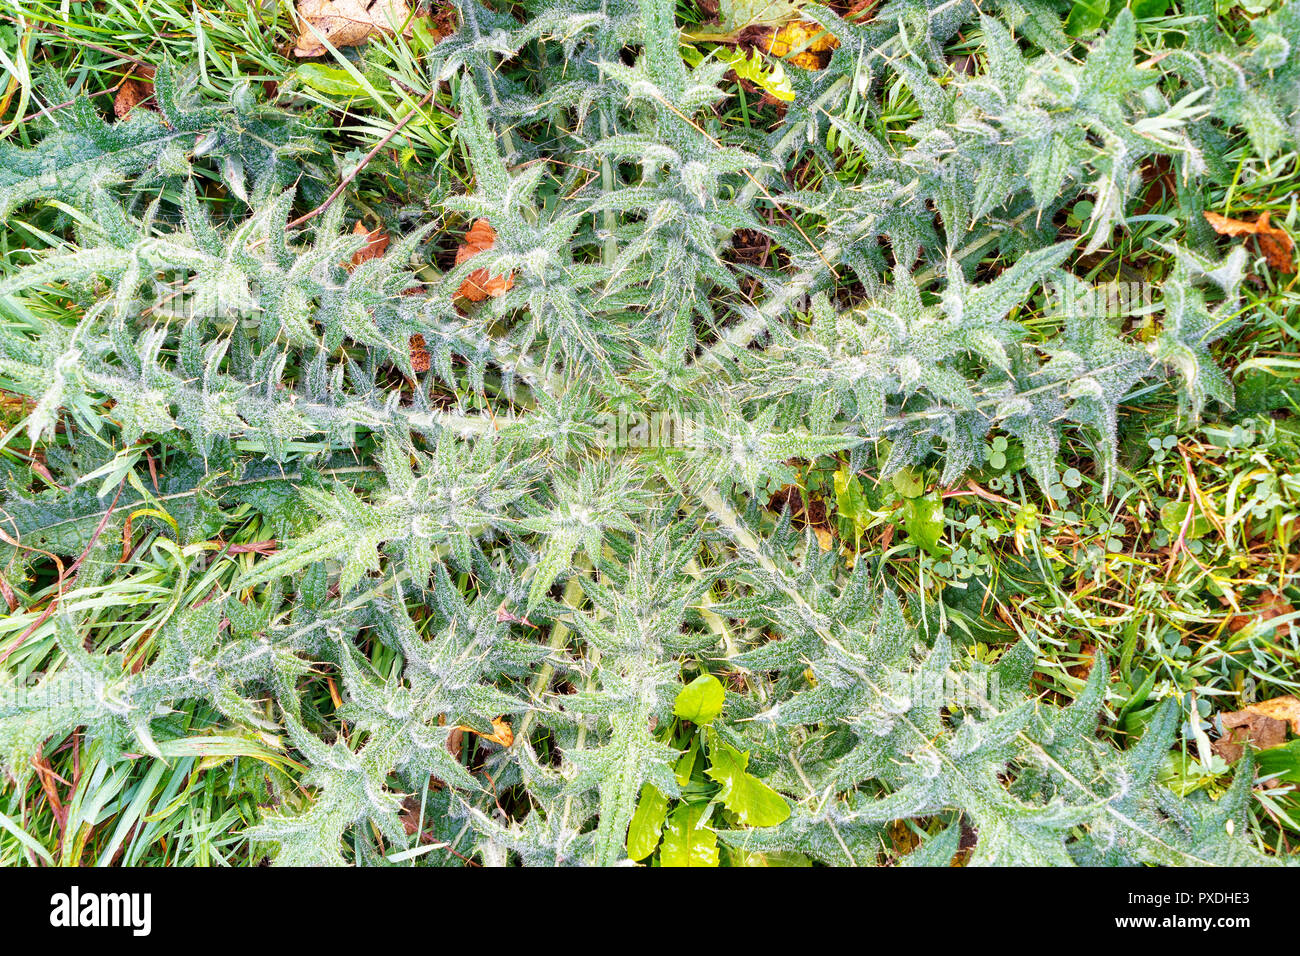 Large prickly thistle plant - Stock Image